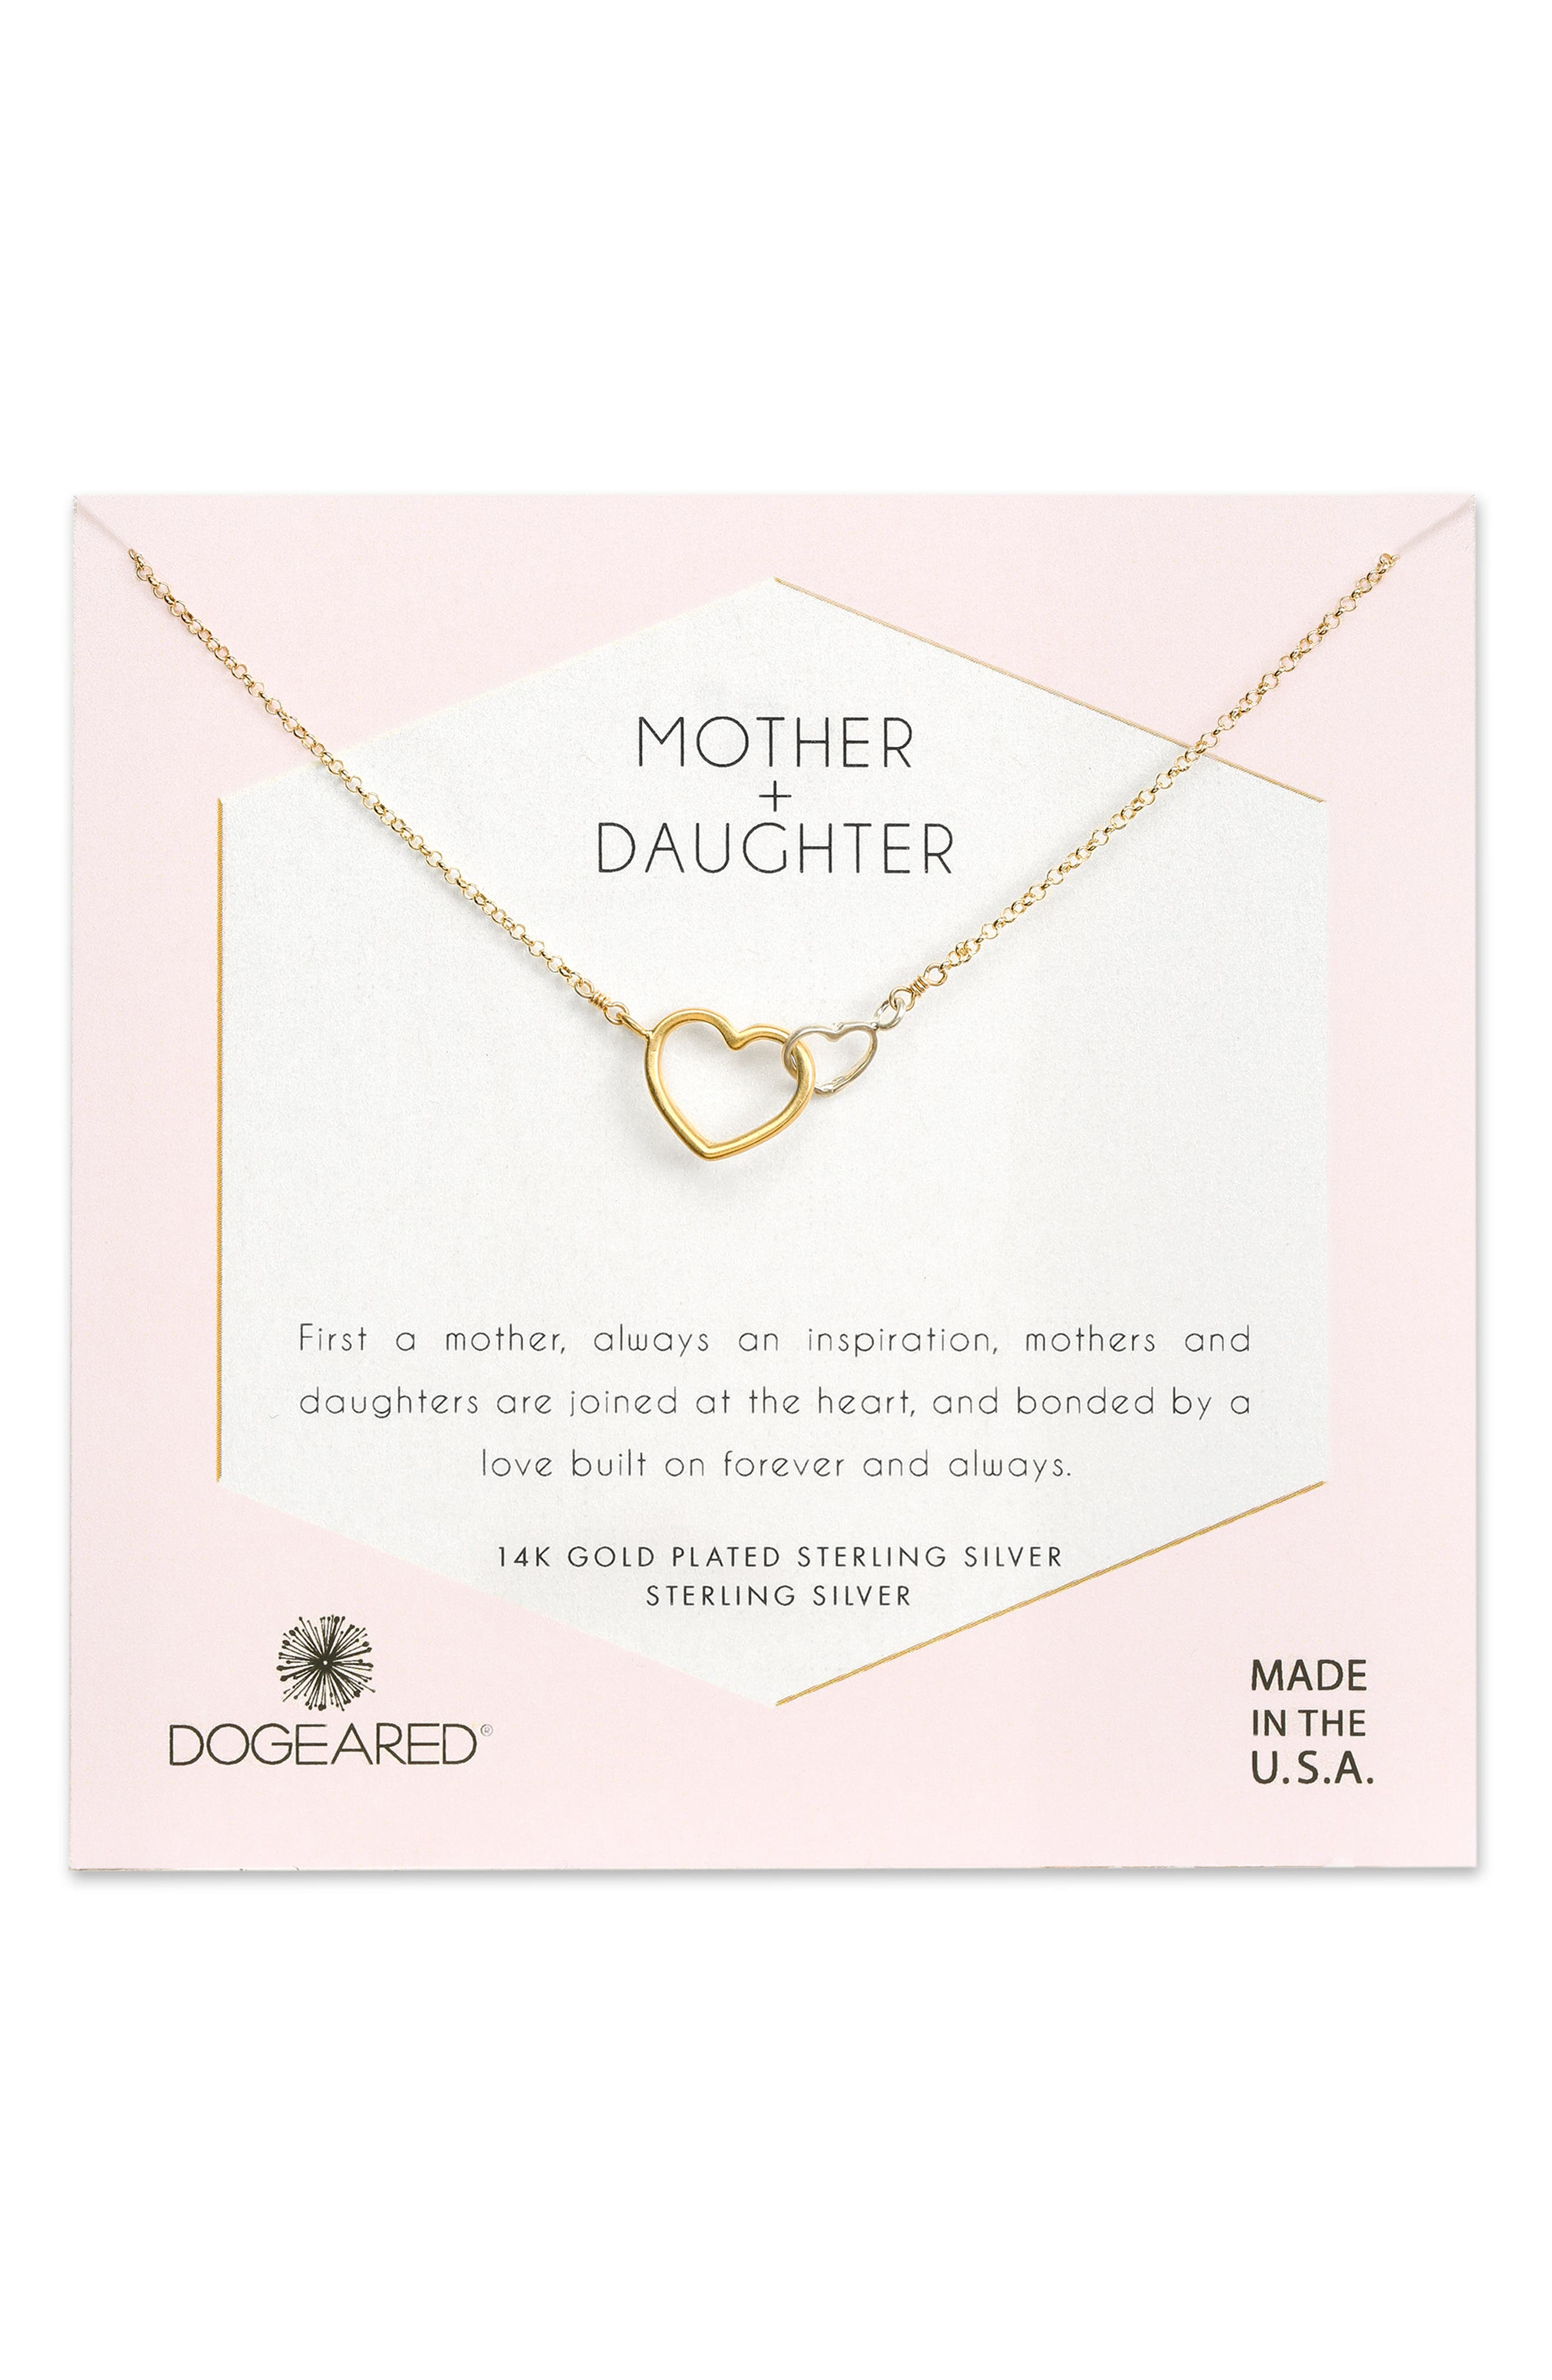 Mother + Daughter Linked Hearts Necklace,                             Main thumbnail 1, color,                             710